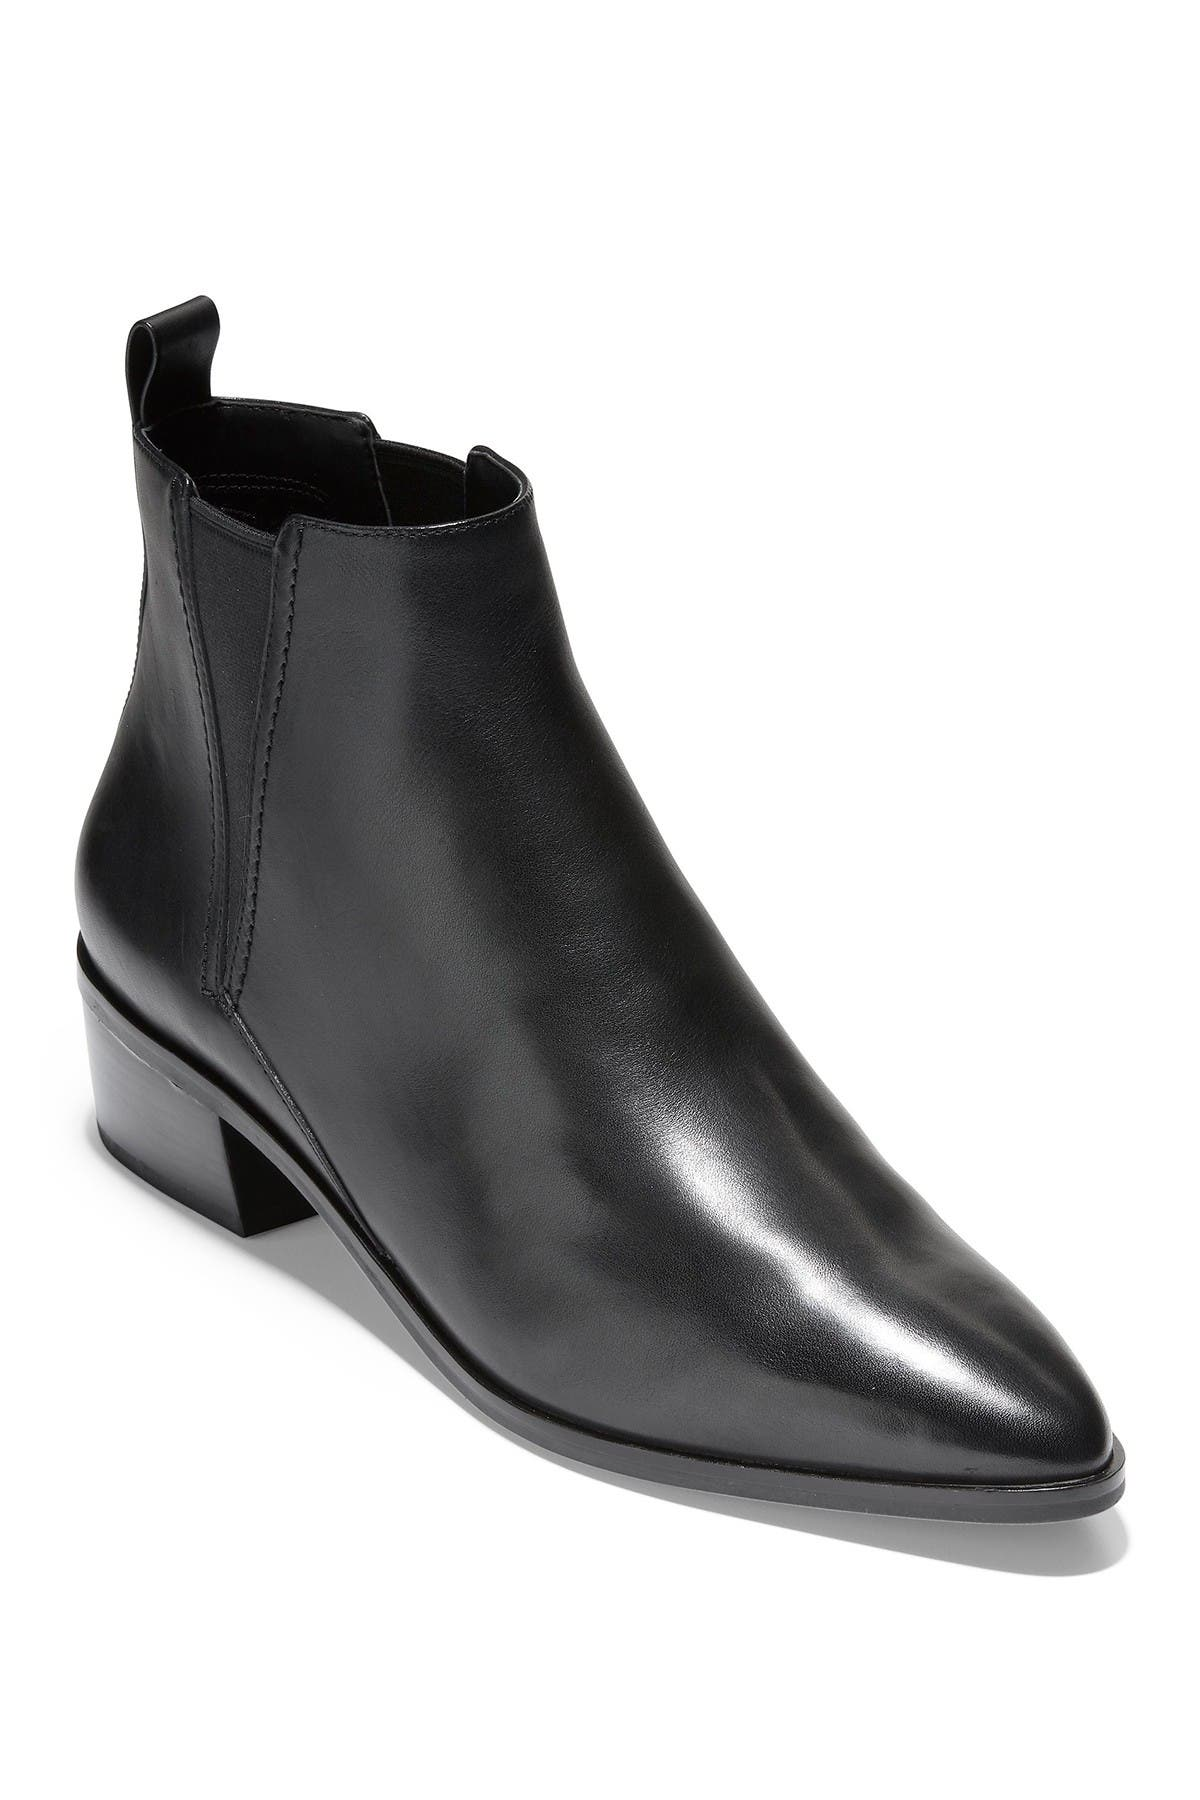 Image of Cole Haan Marinne Pointed Toe Chelsea Bootie